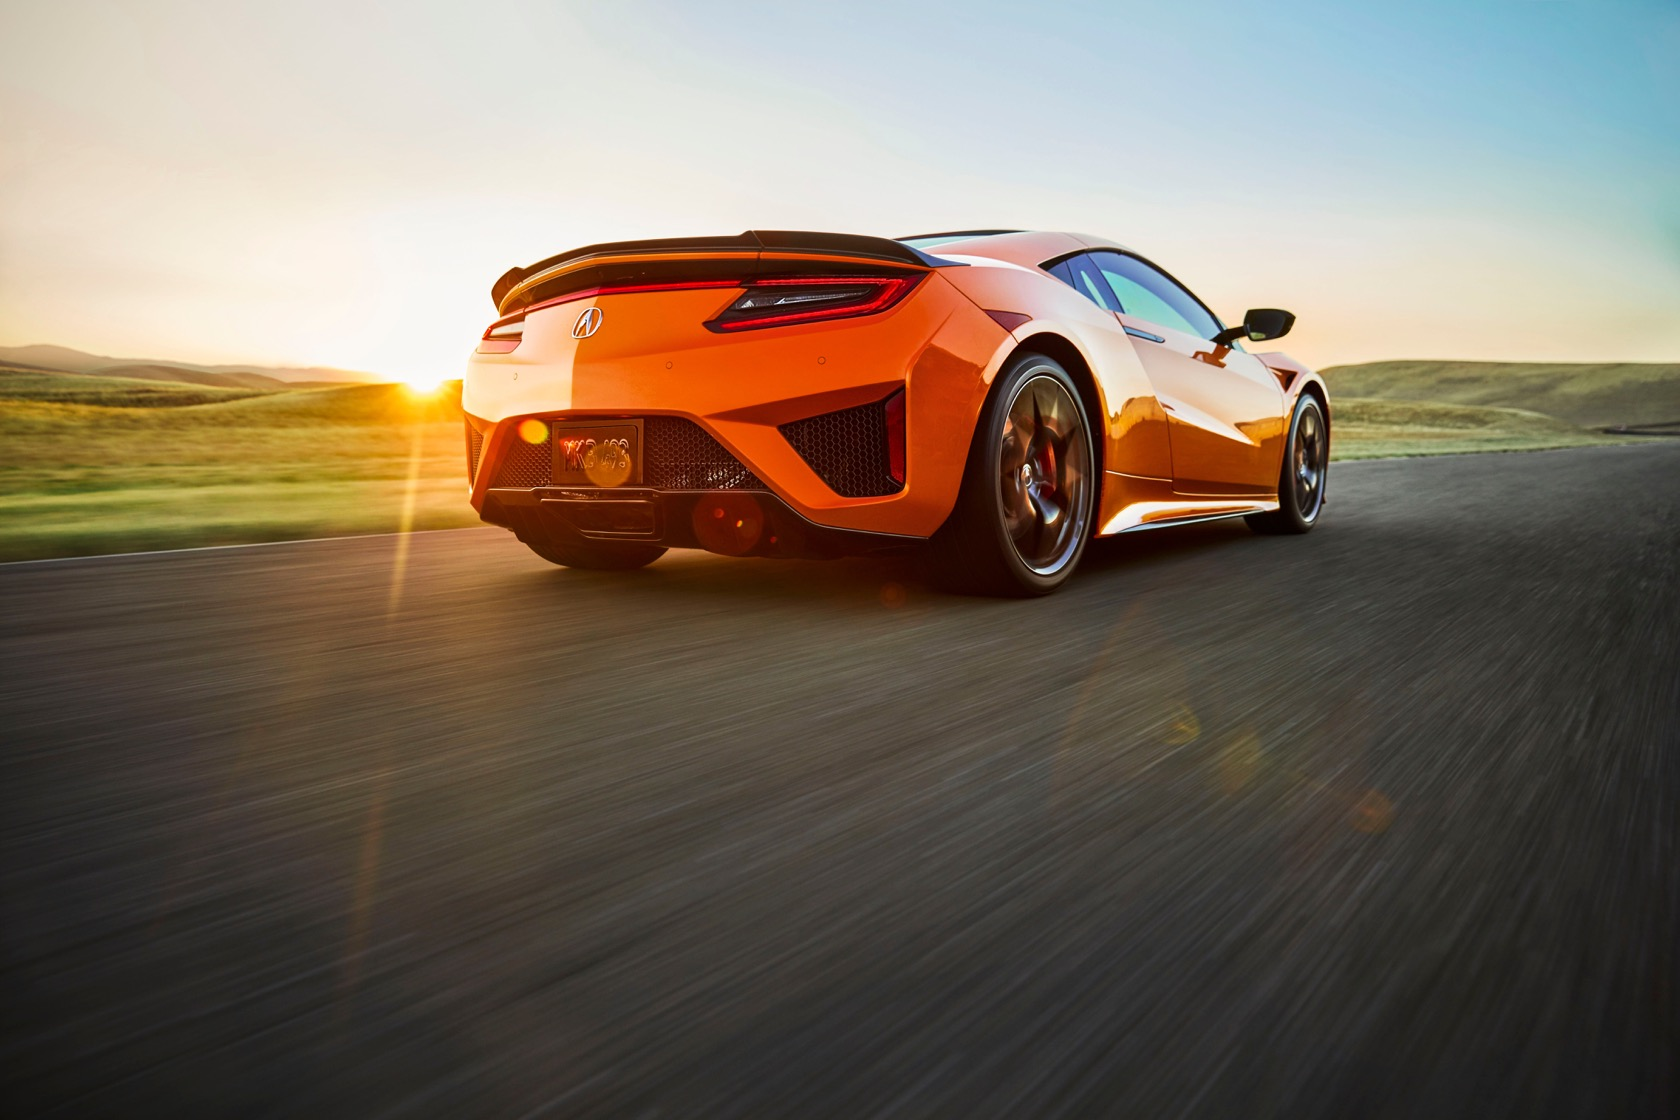 2019 Acura NSX rear